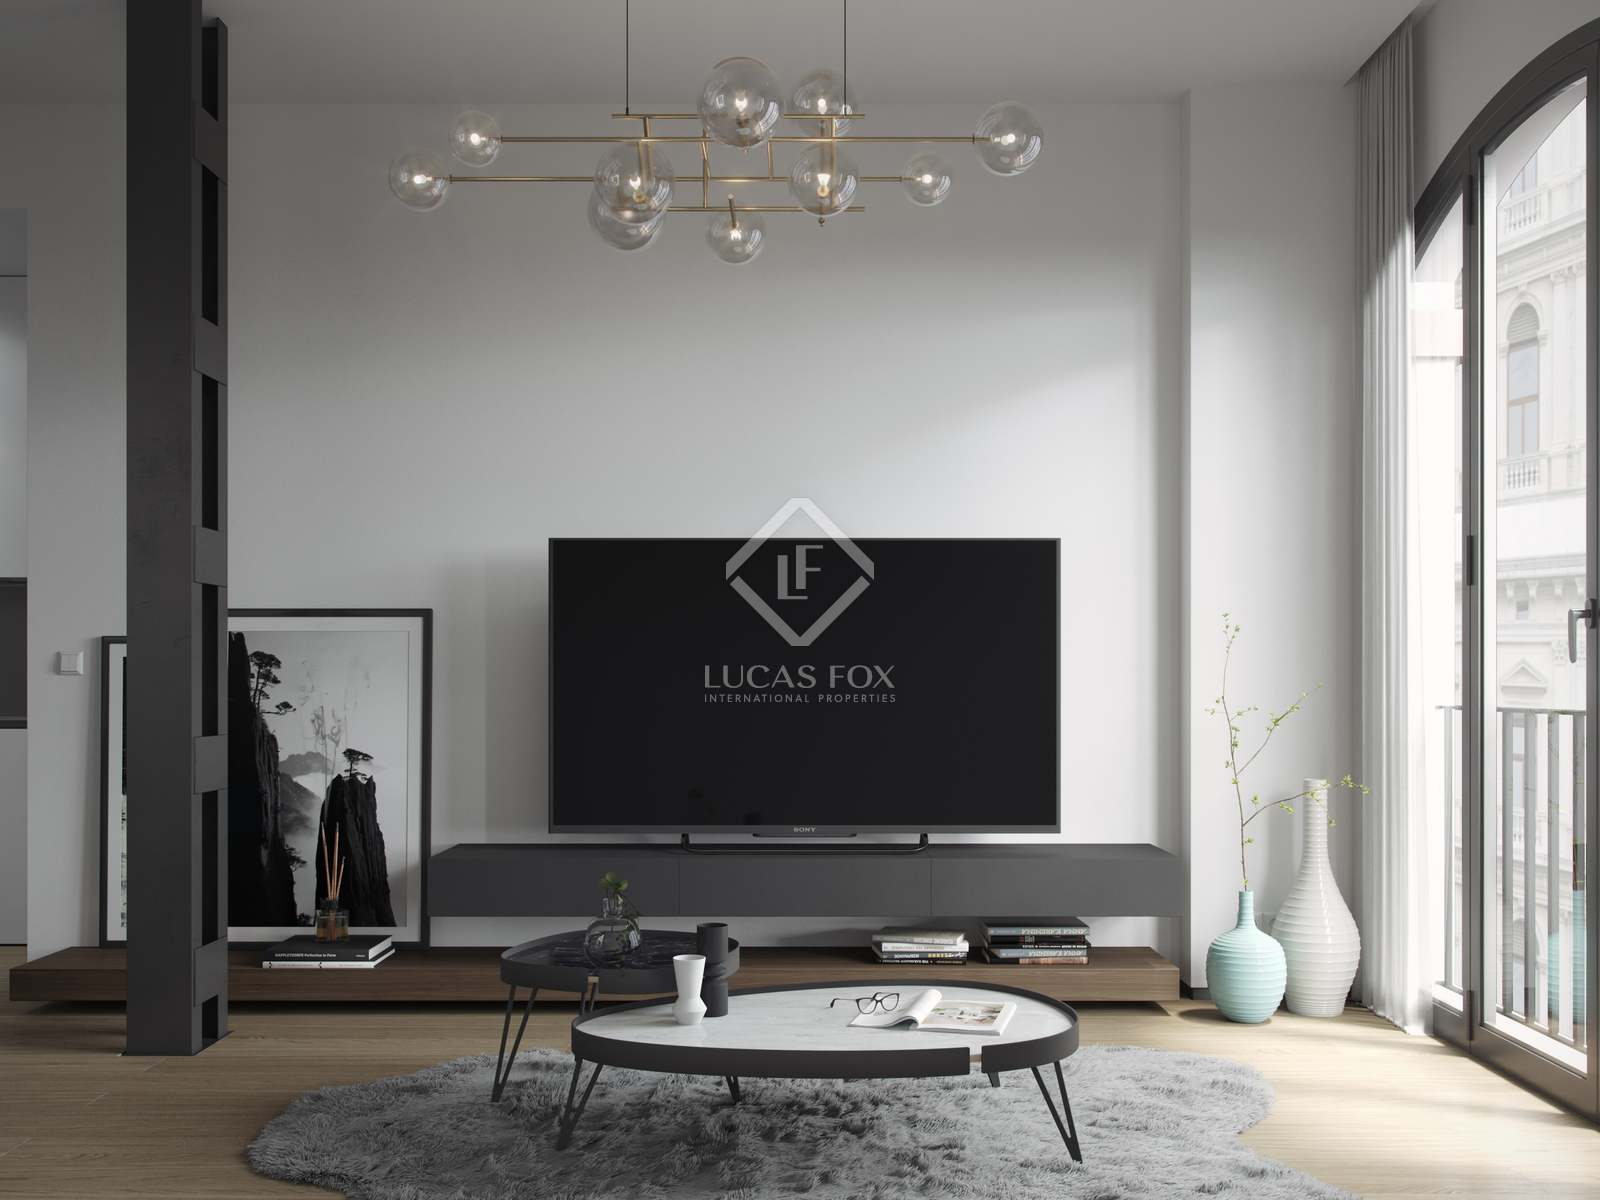 Living room : Some unit images shown are computer generated or indicative only